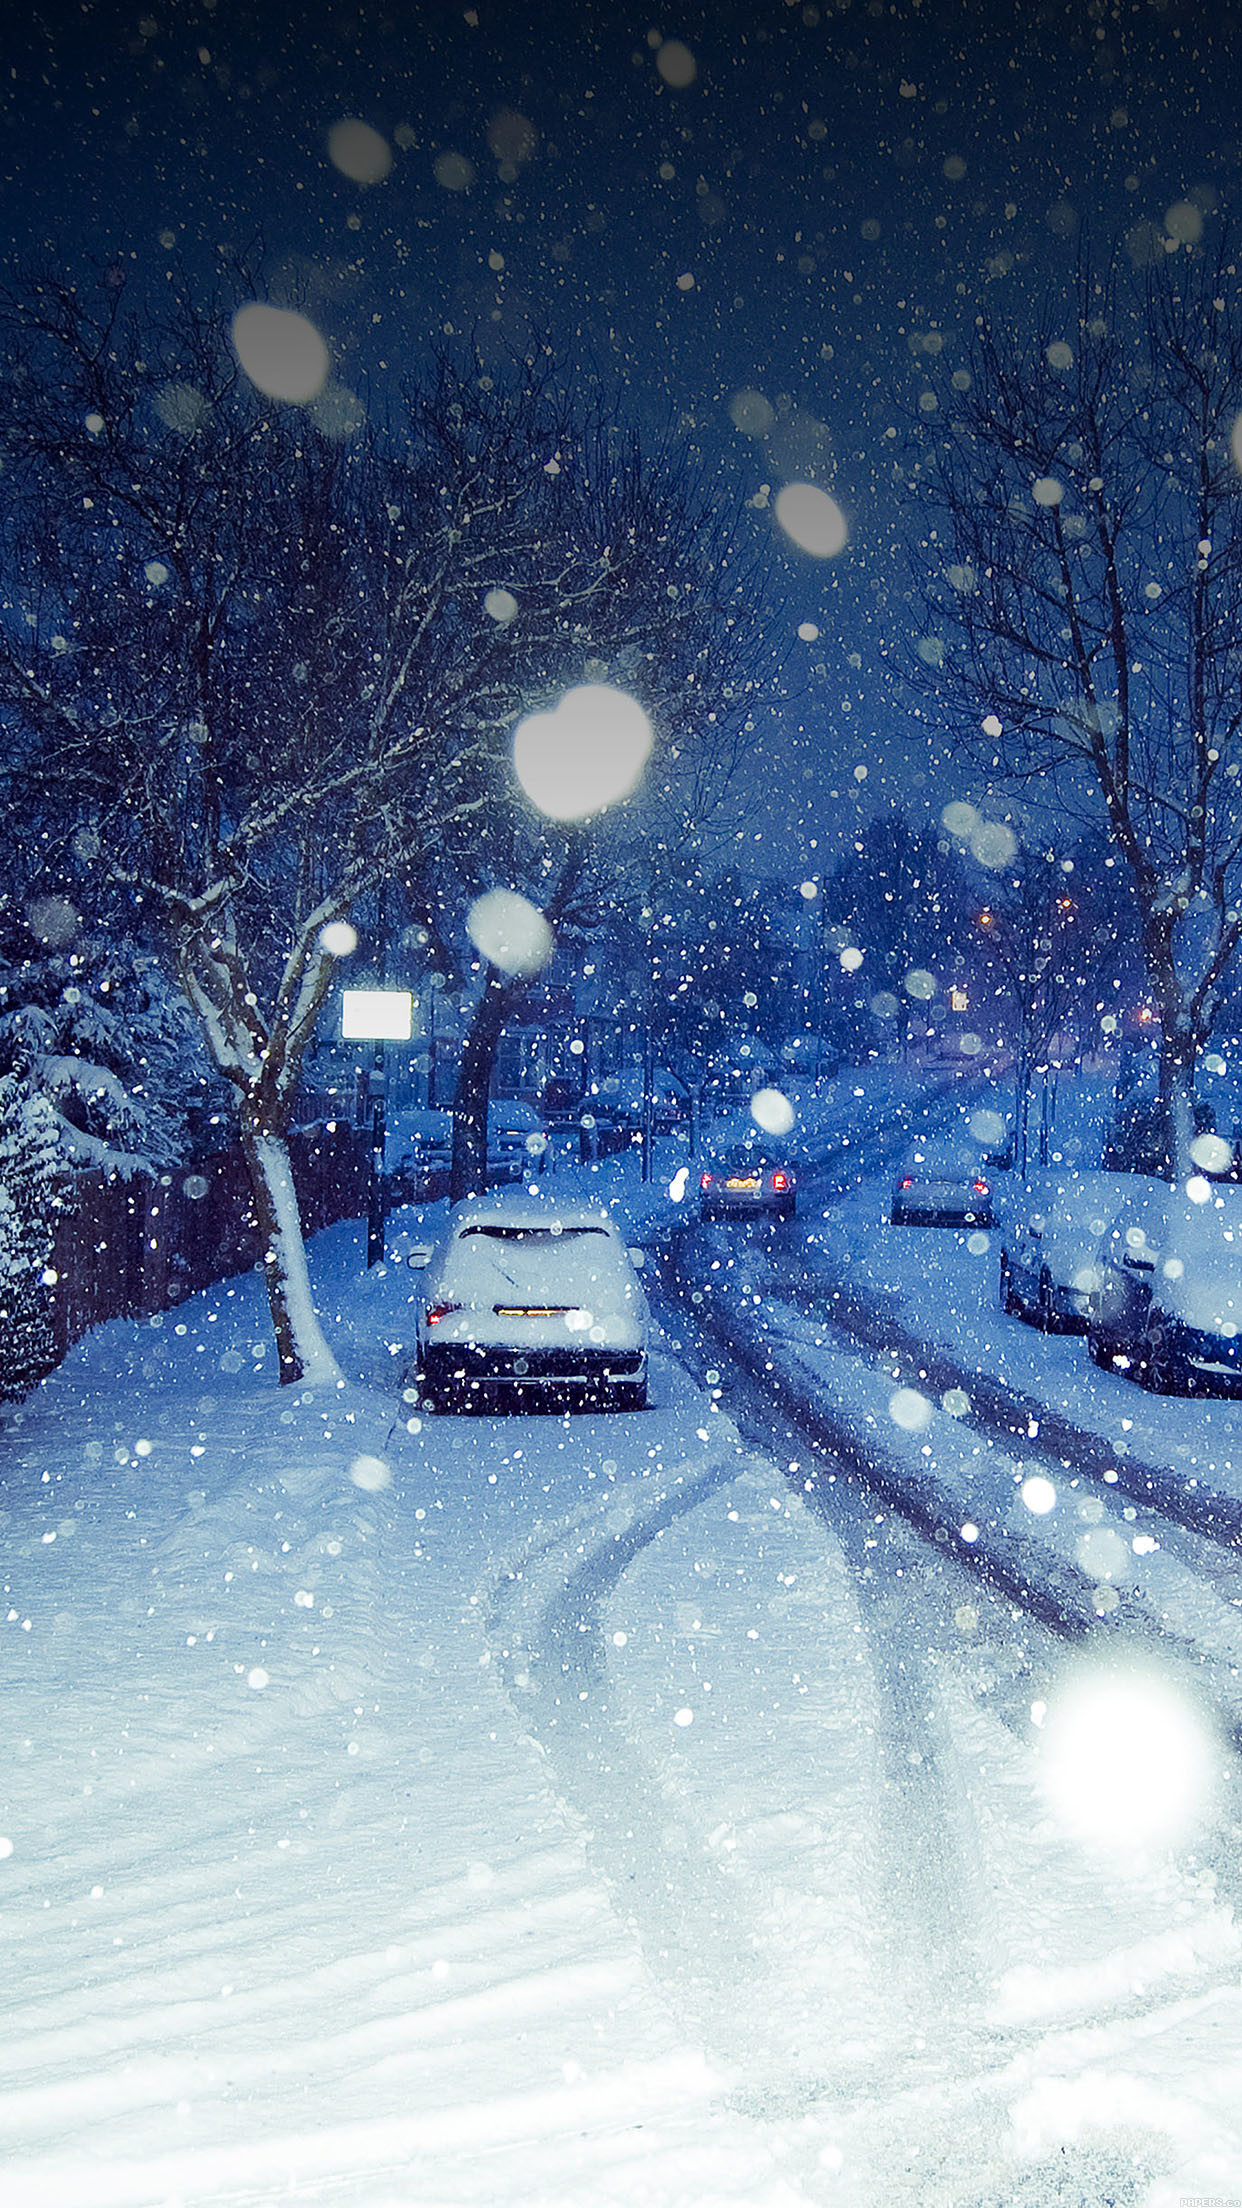 Res: 1242x2208, ma94-snowy-blue-road-winter-nature